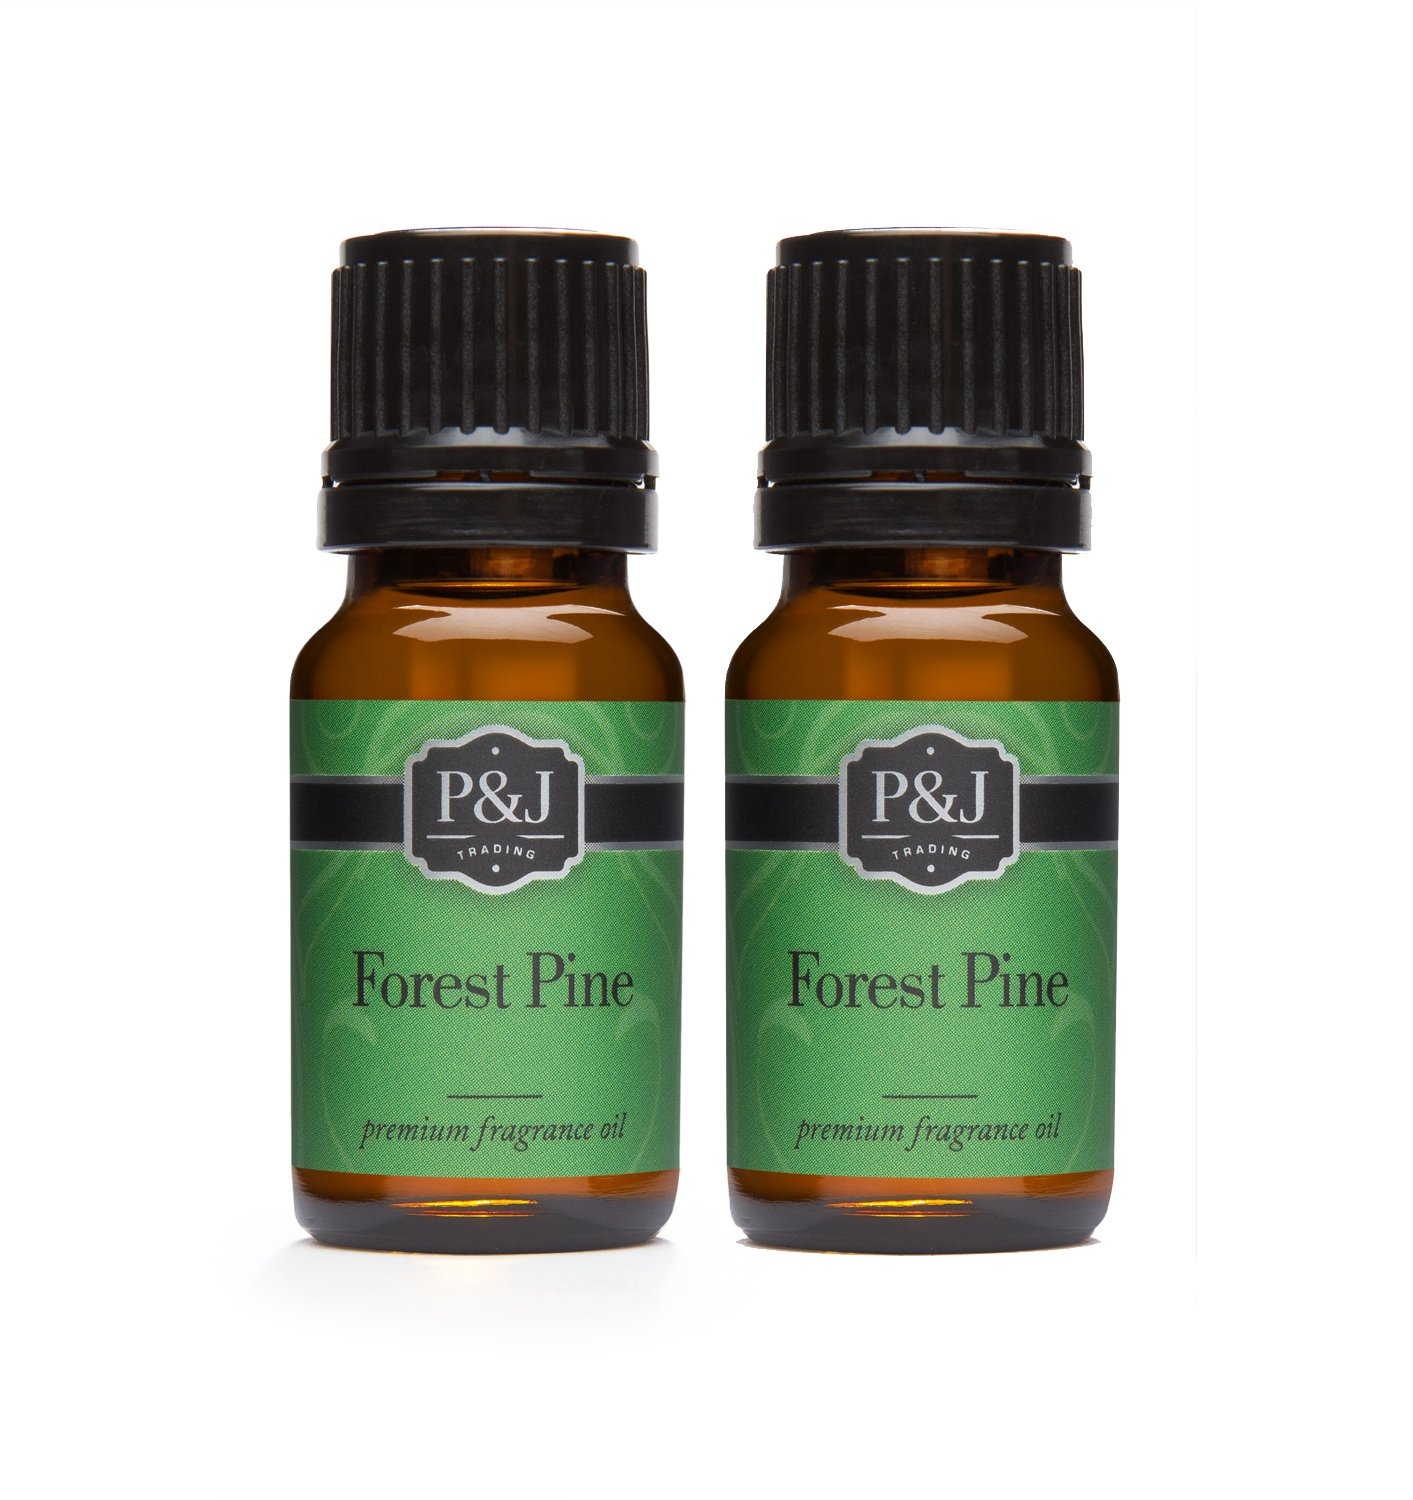 Forest Pine Fragrance Oil - Premium Grade Scented Oil - 10ml - 2-Pack